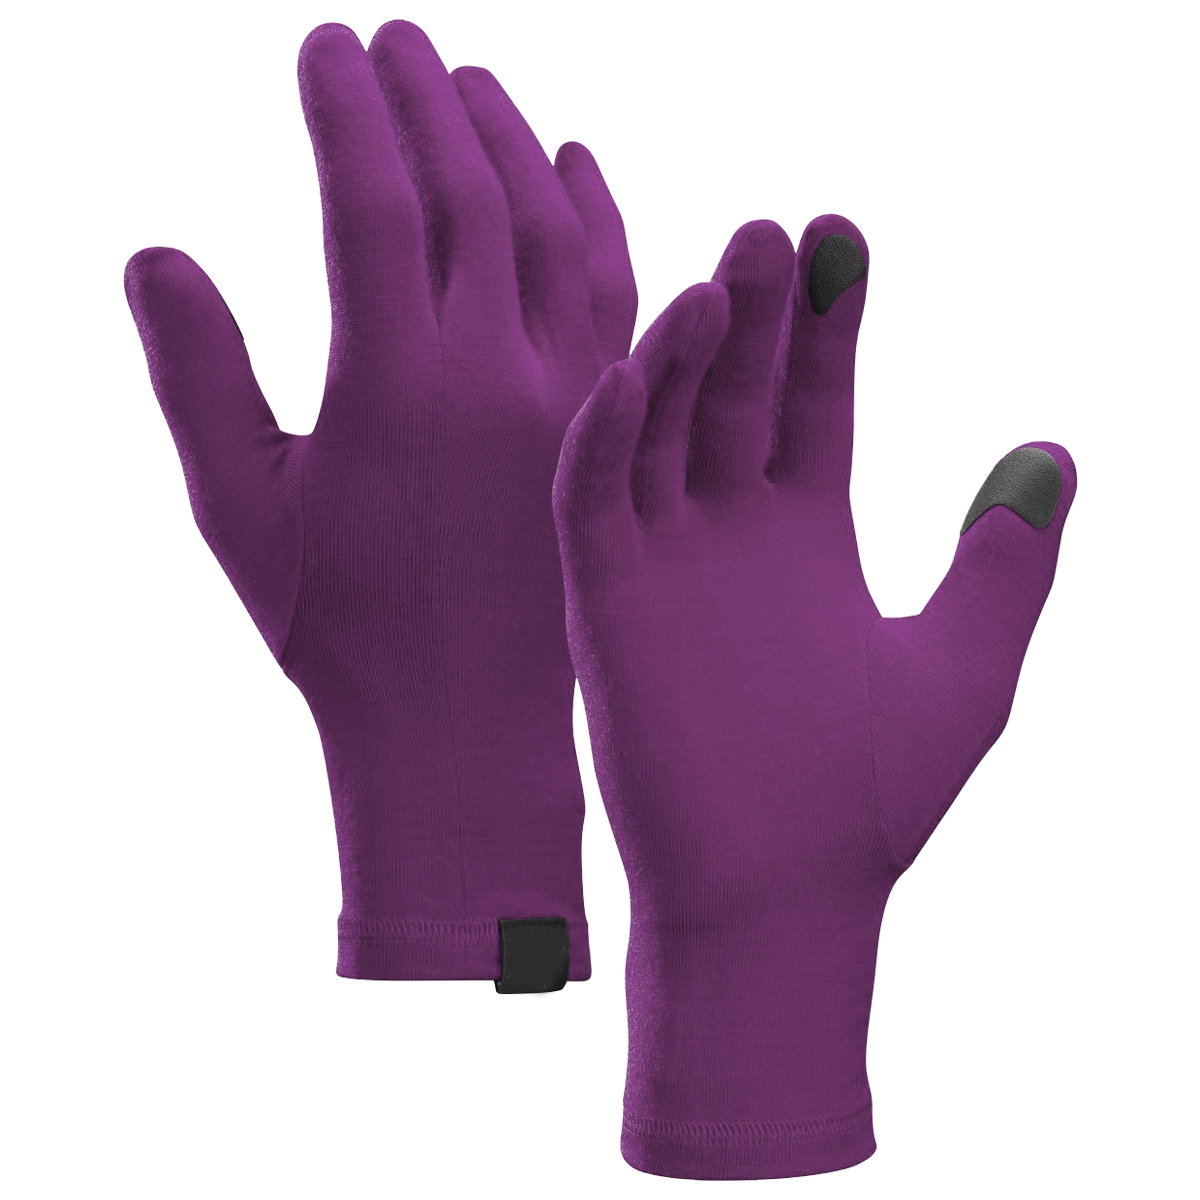 Wool Gloves with 2 Touch Screen Finger/MWG-003-P